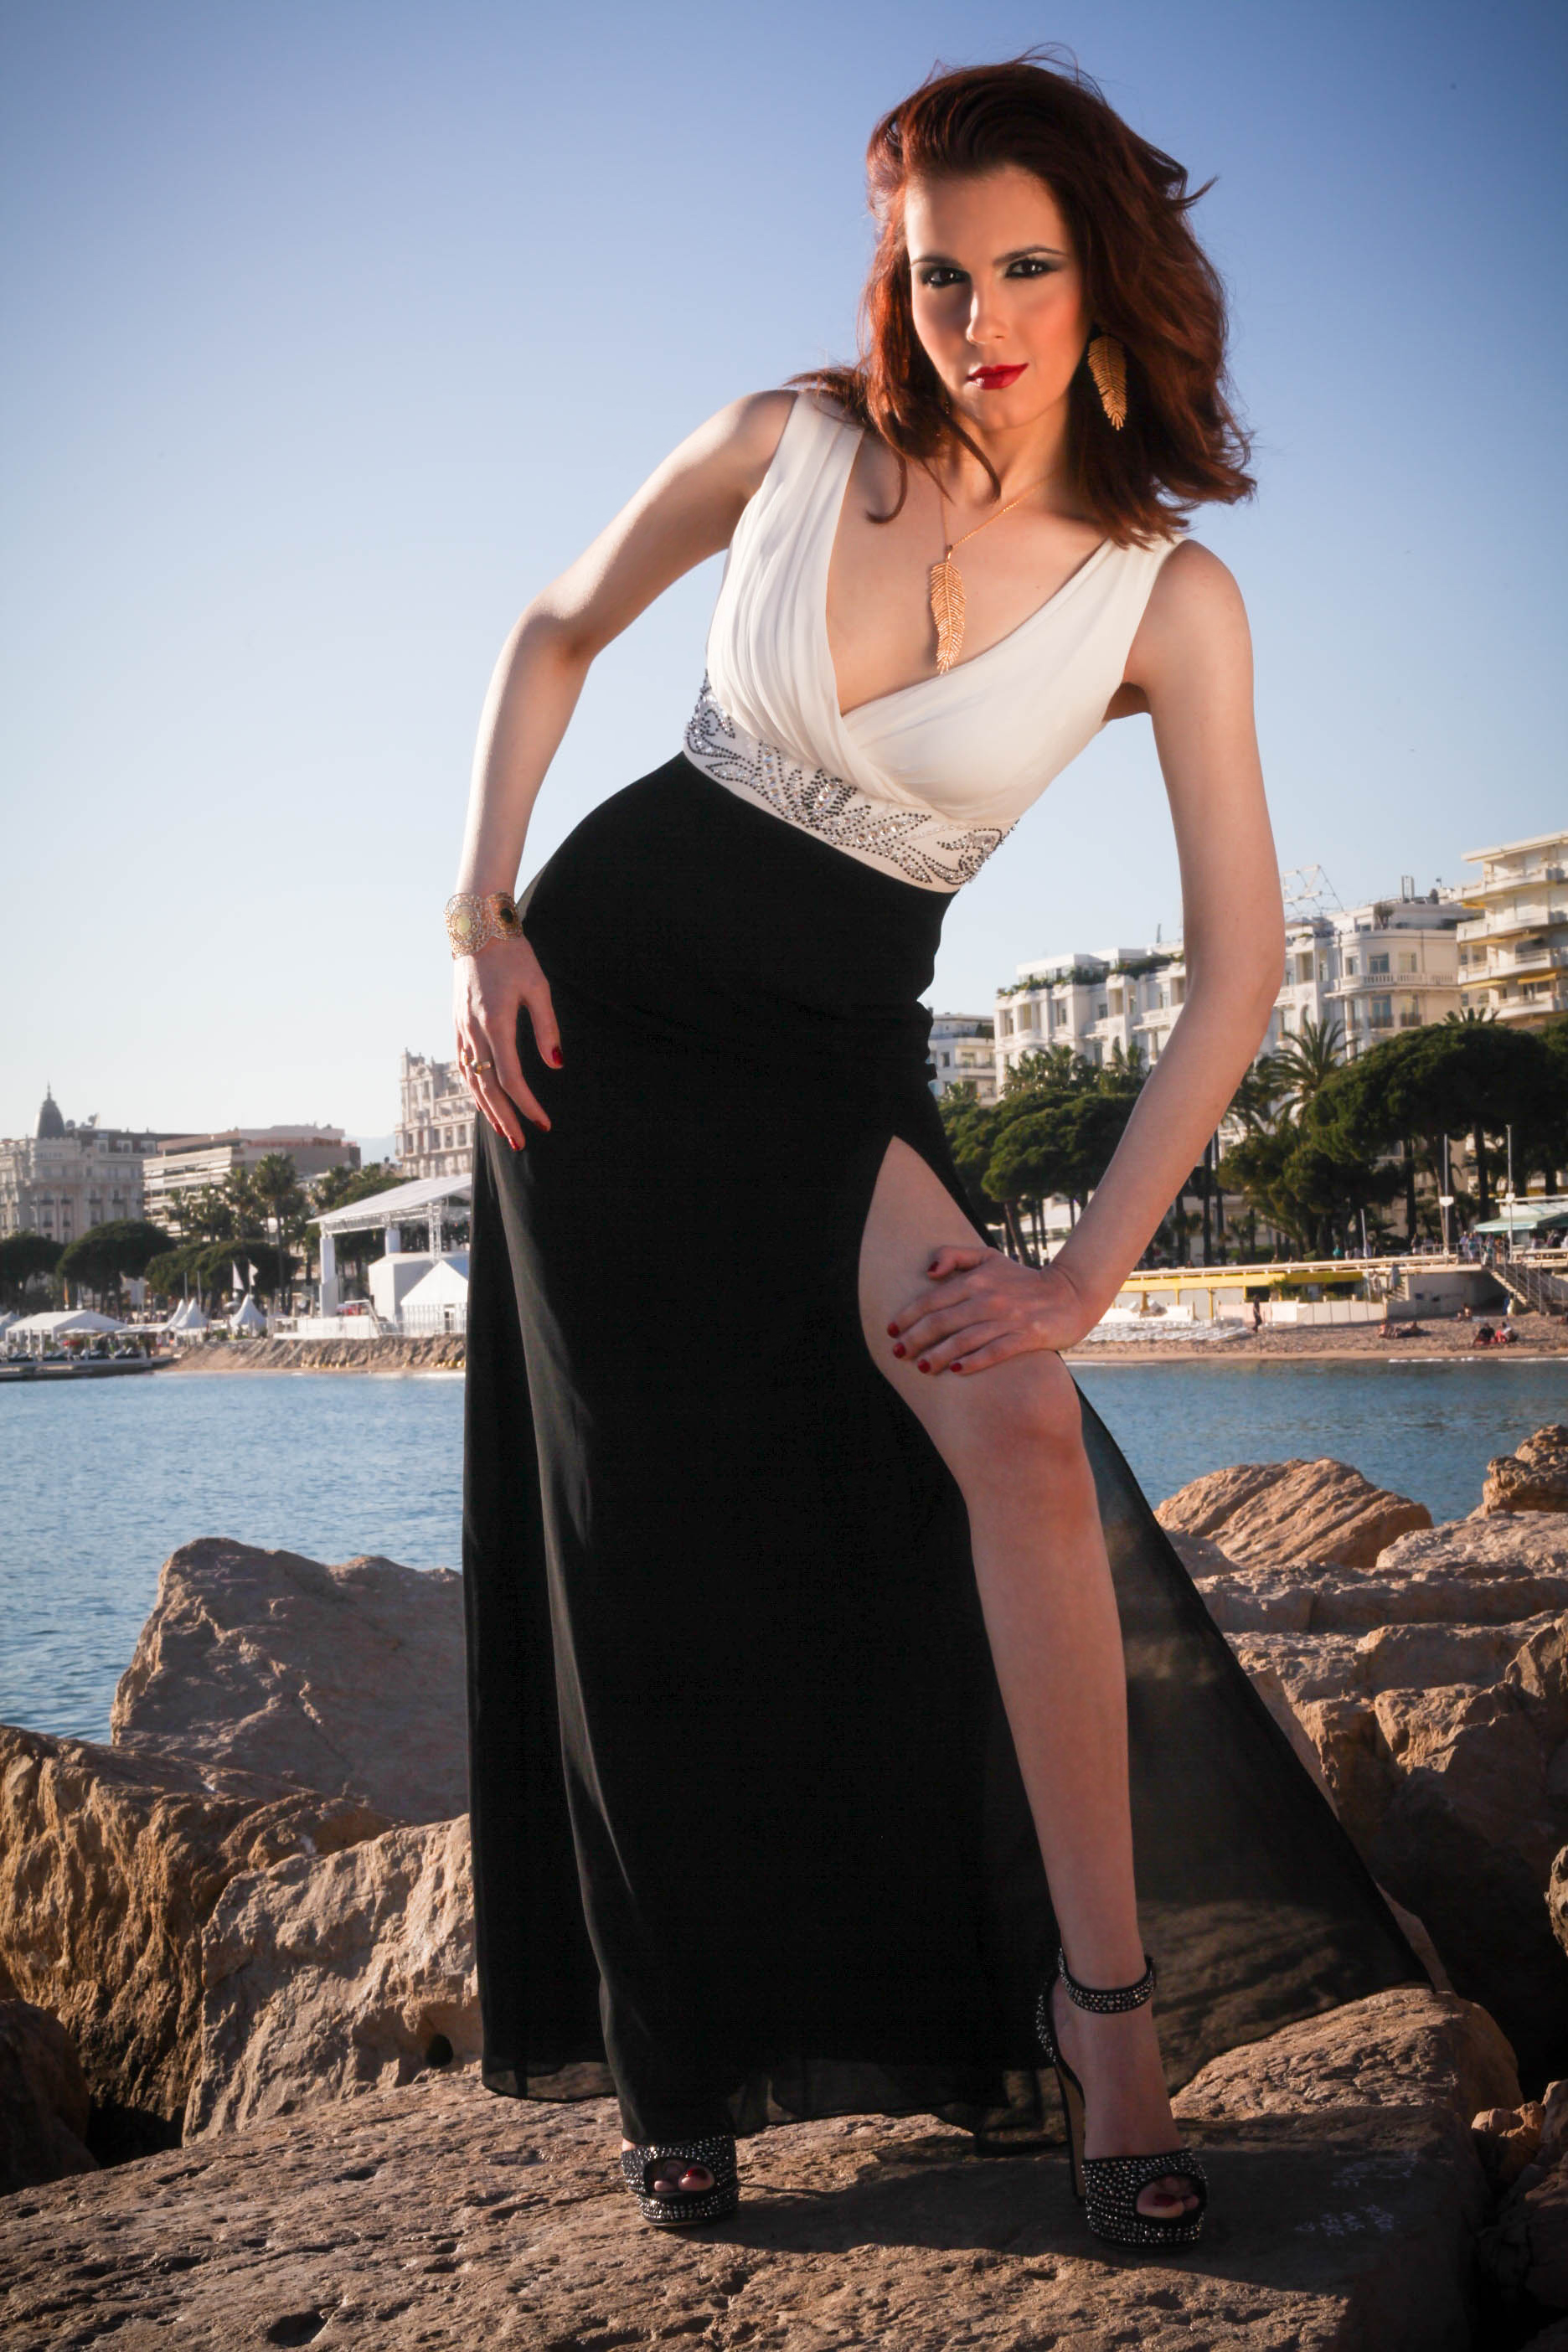 Cannes Promenade Photo Shoot... On the Rocks 2